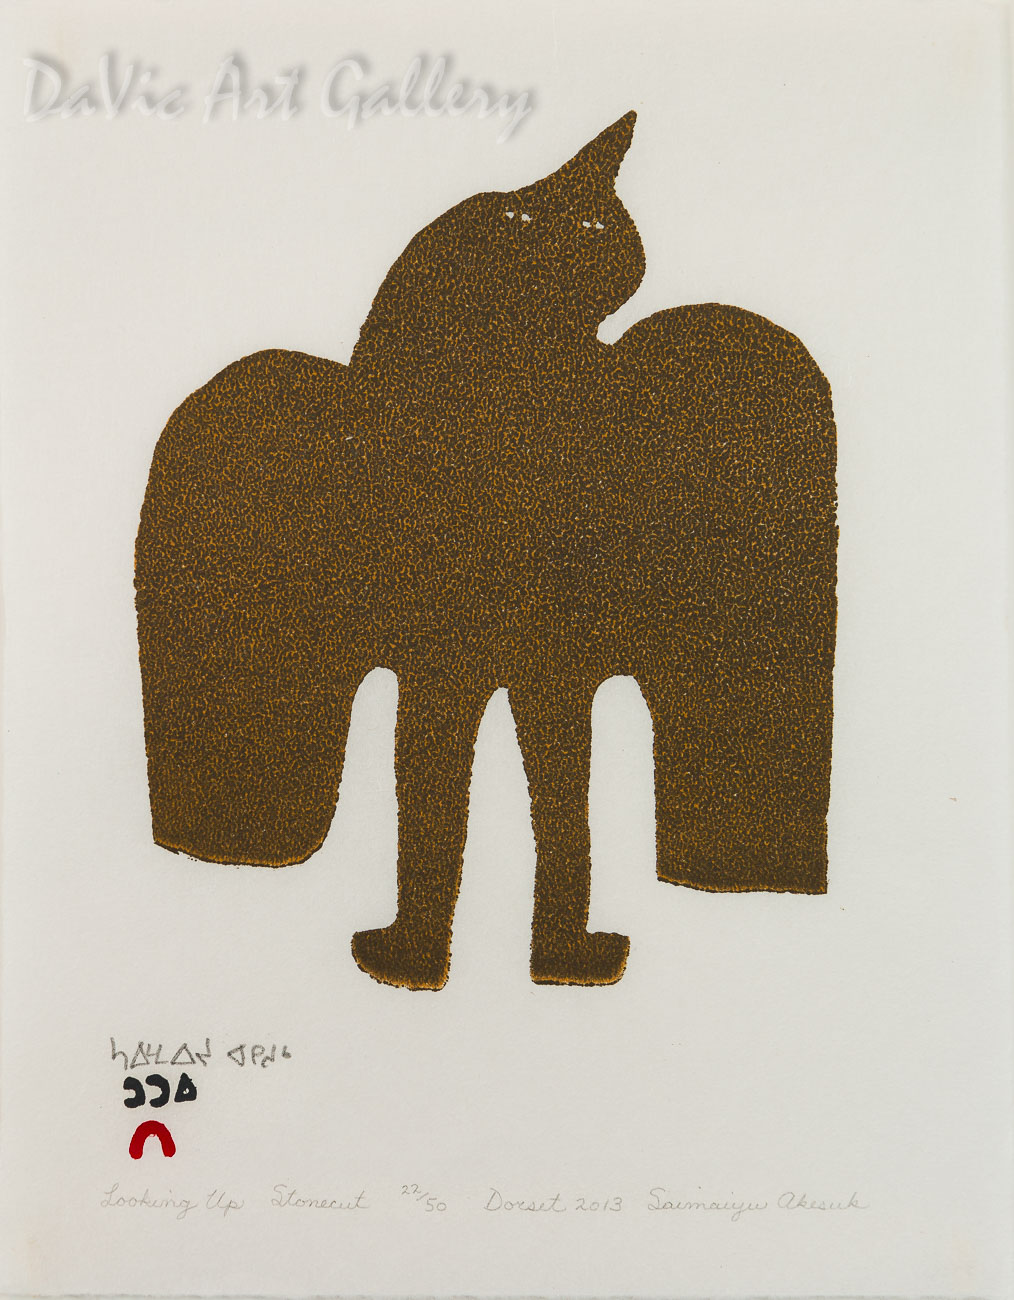 """Looking Up"" by Saimaiyu Akesuk - Inuit - Cape Dorset 2013"